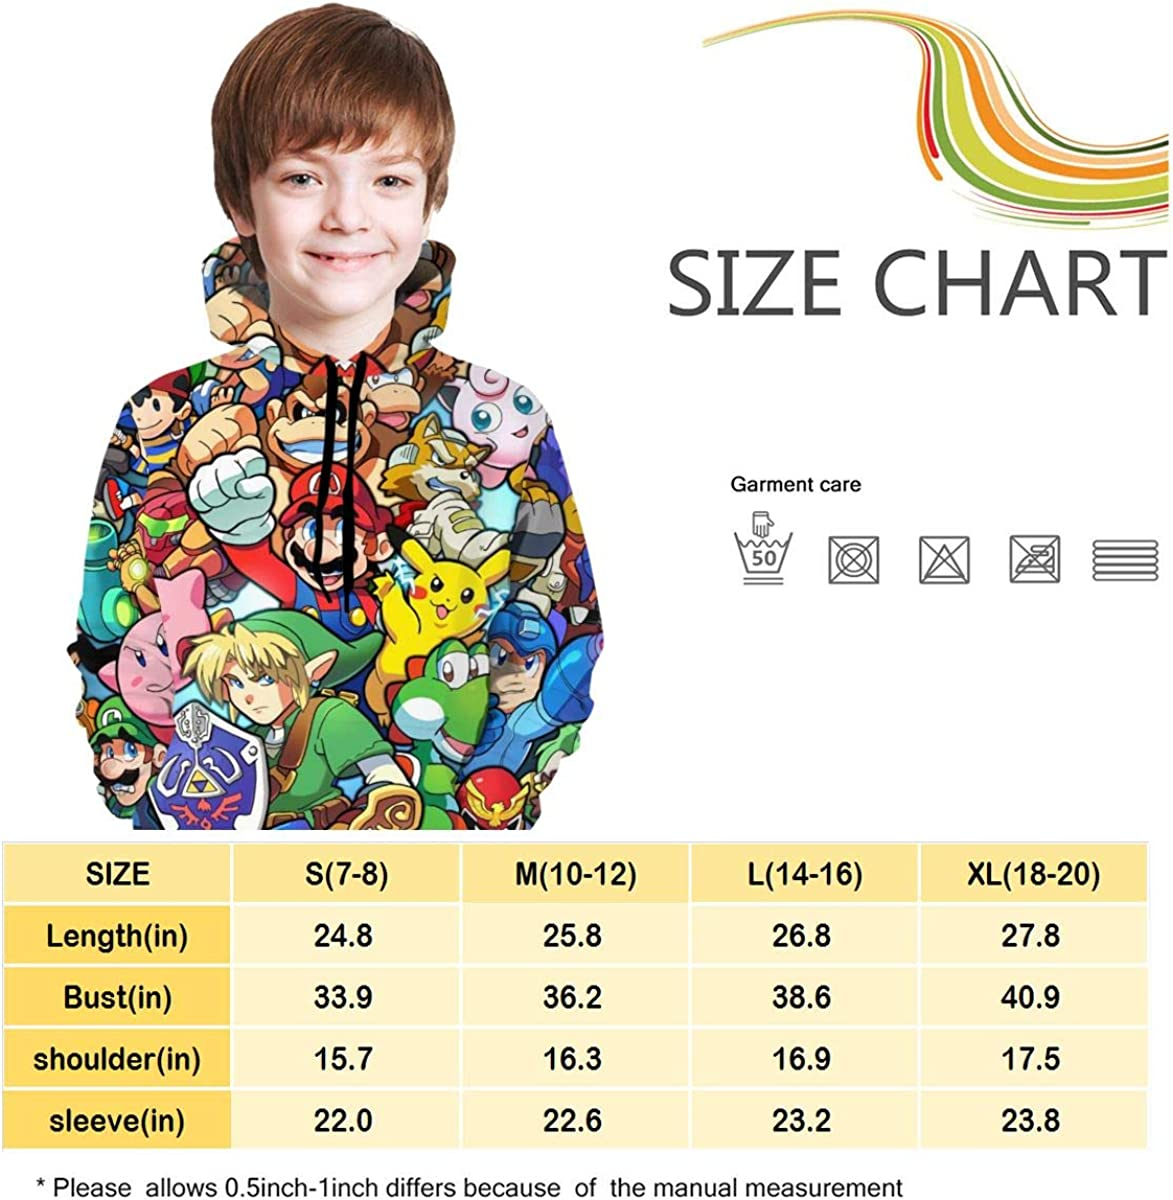 The Legend of Zelda Sonic Pikachu Super Mario Smash Bros Kirby Teens Hoodie Print Pullover Personalised Hoodies Seatshirts Sweater for Boys Girls Teen Kids